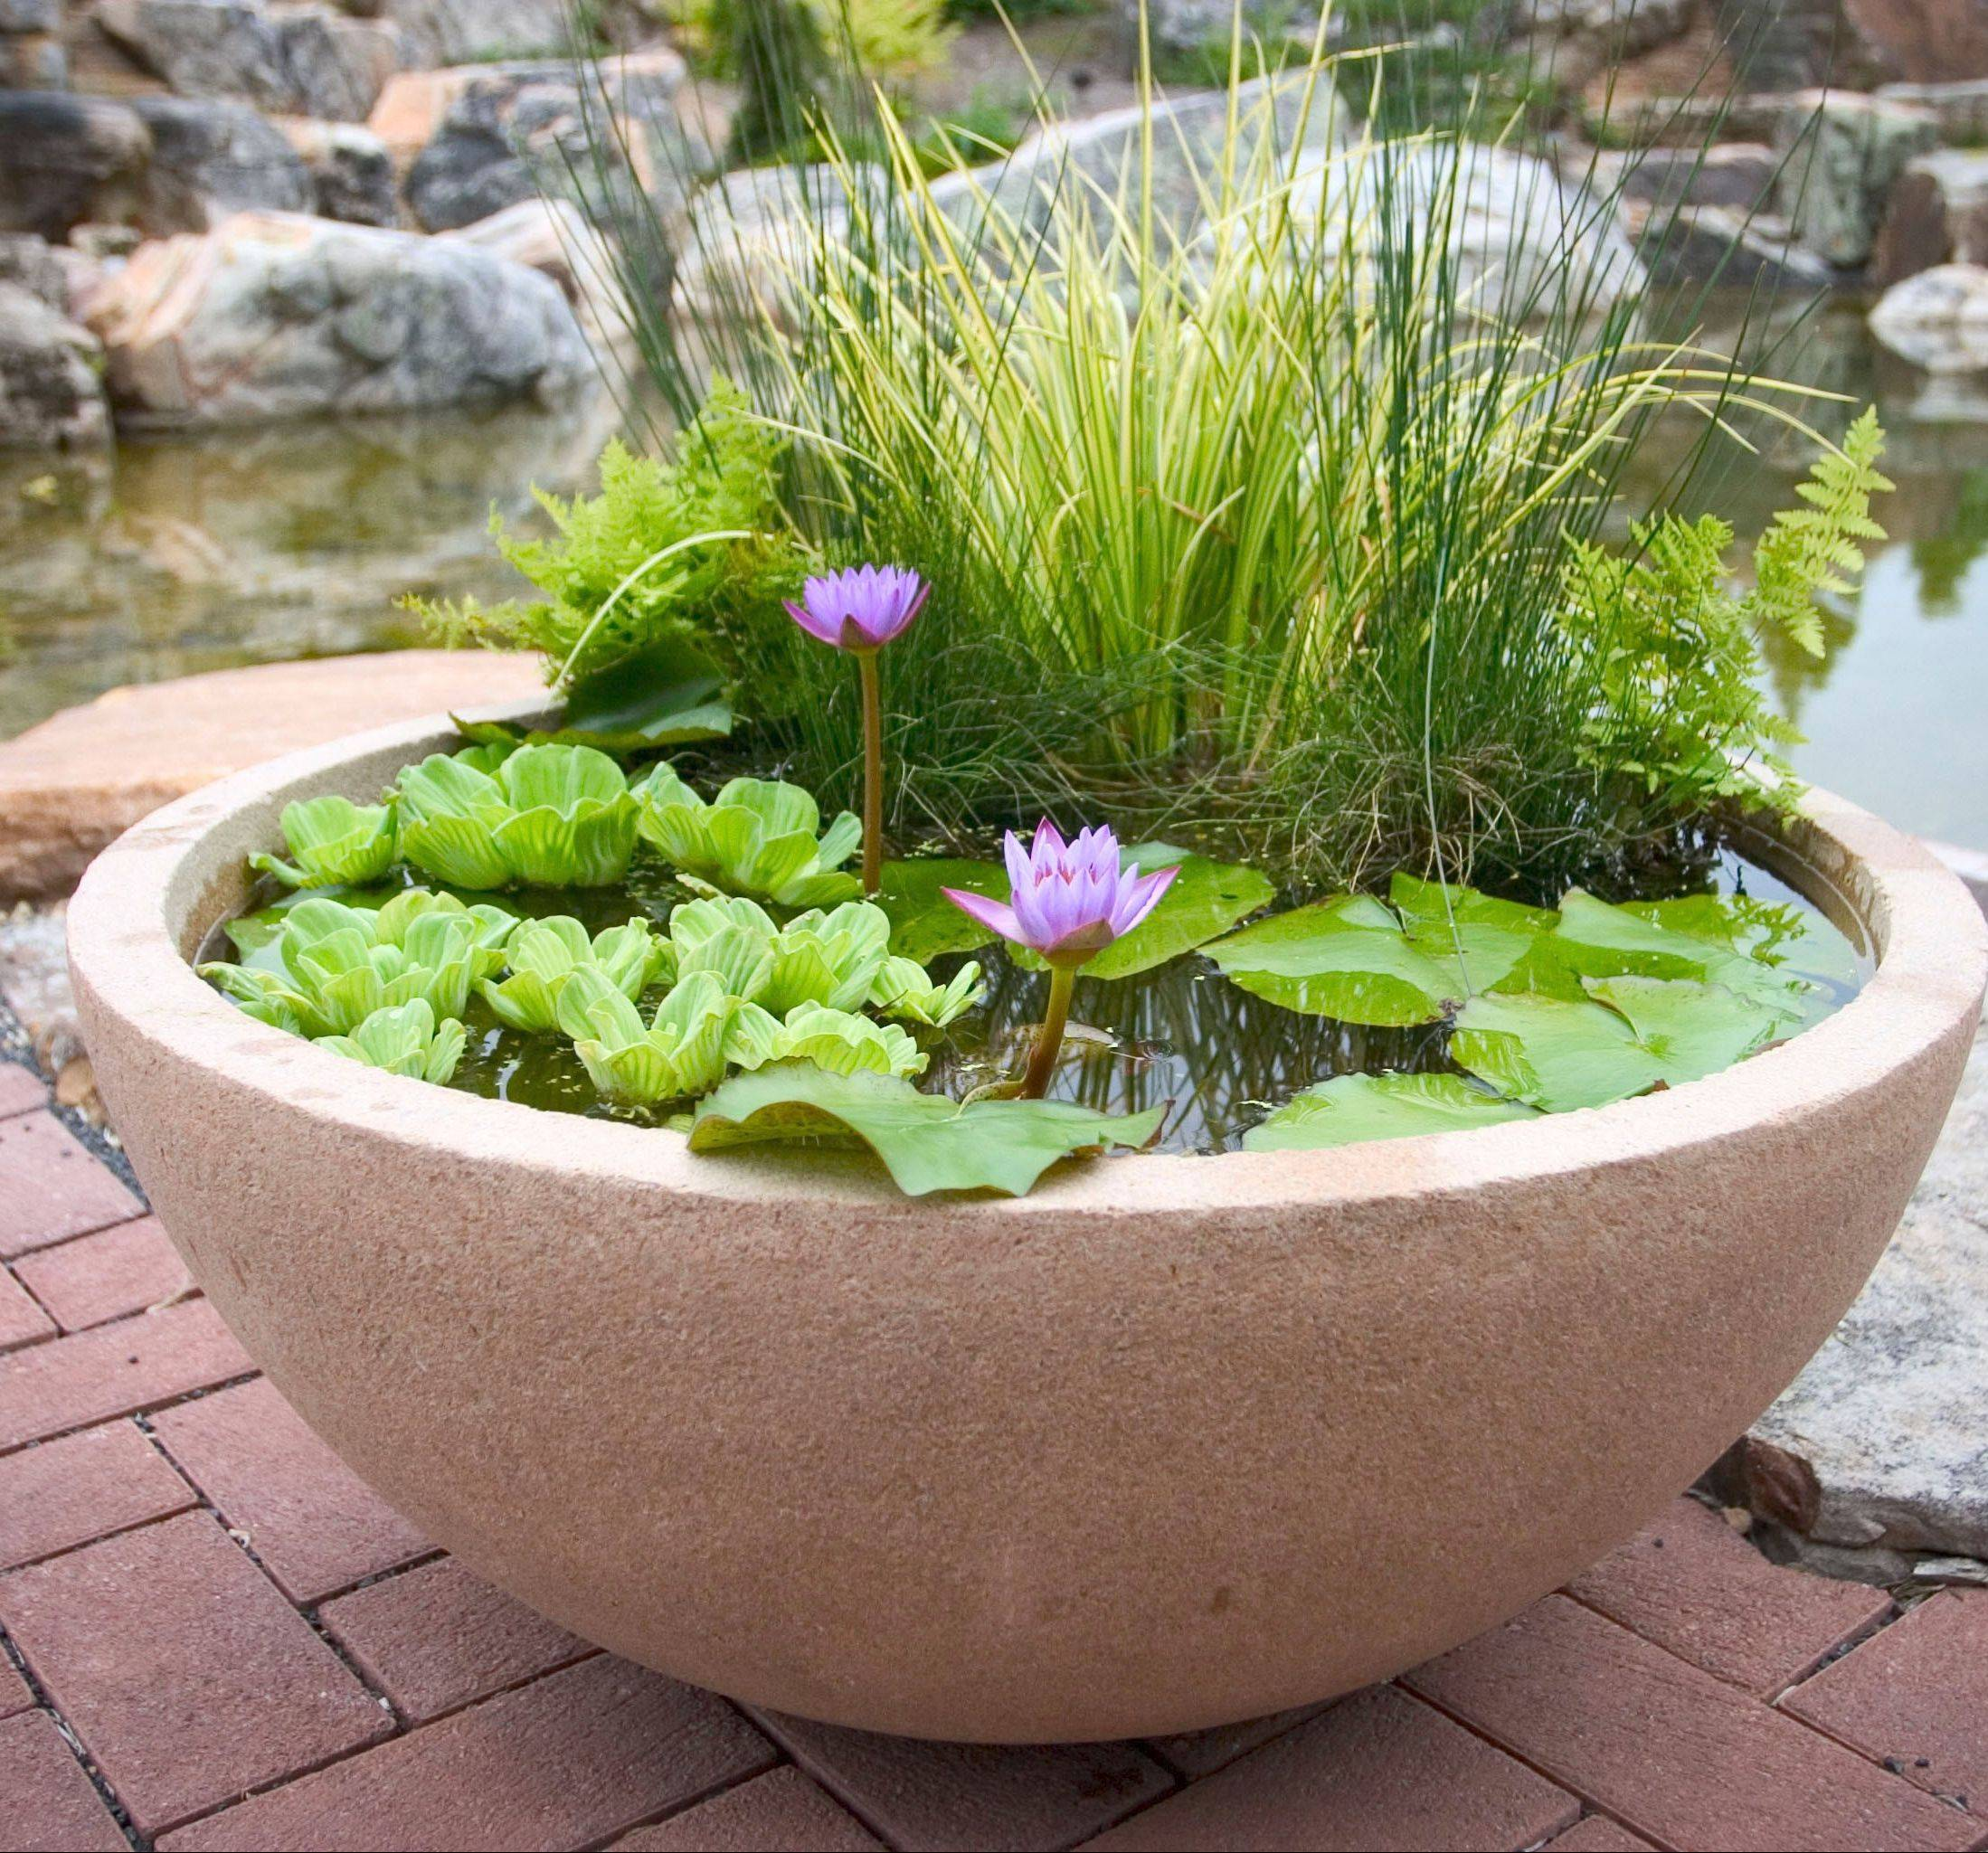 Aqua bowls allow families to bring a water feature to their yard with less maintenance than a pond or waterfall.